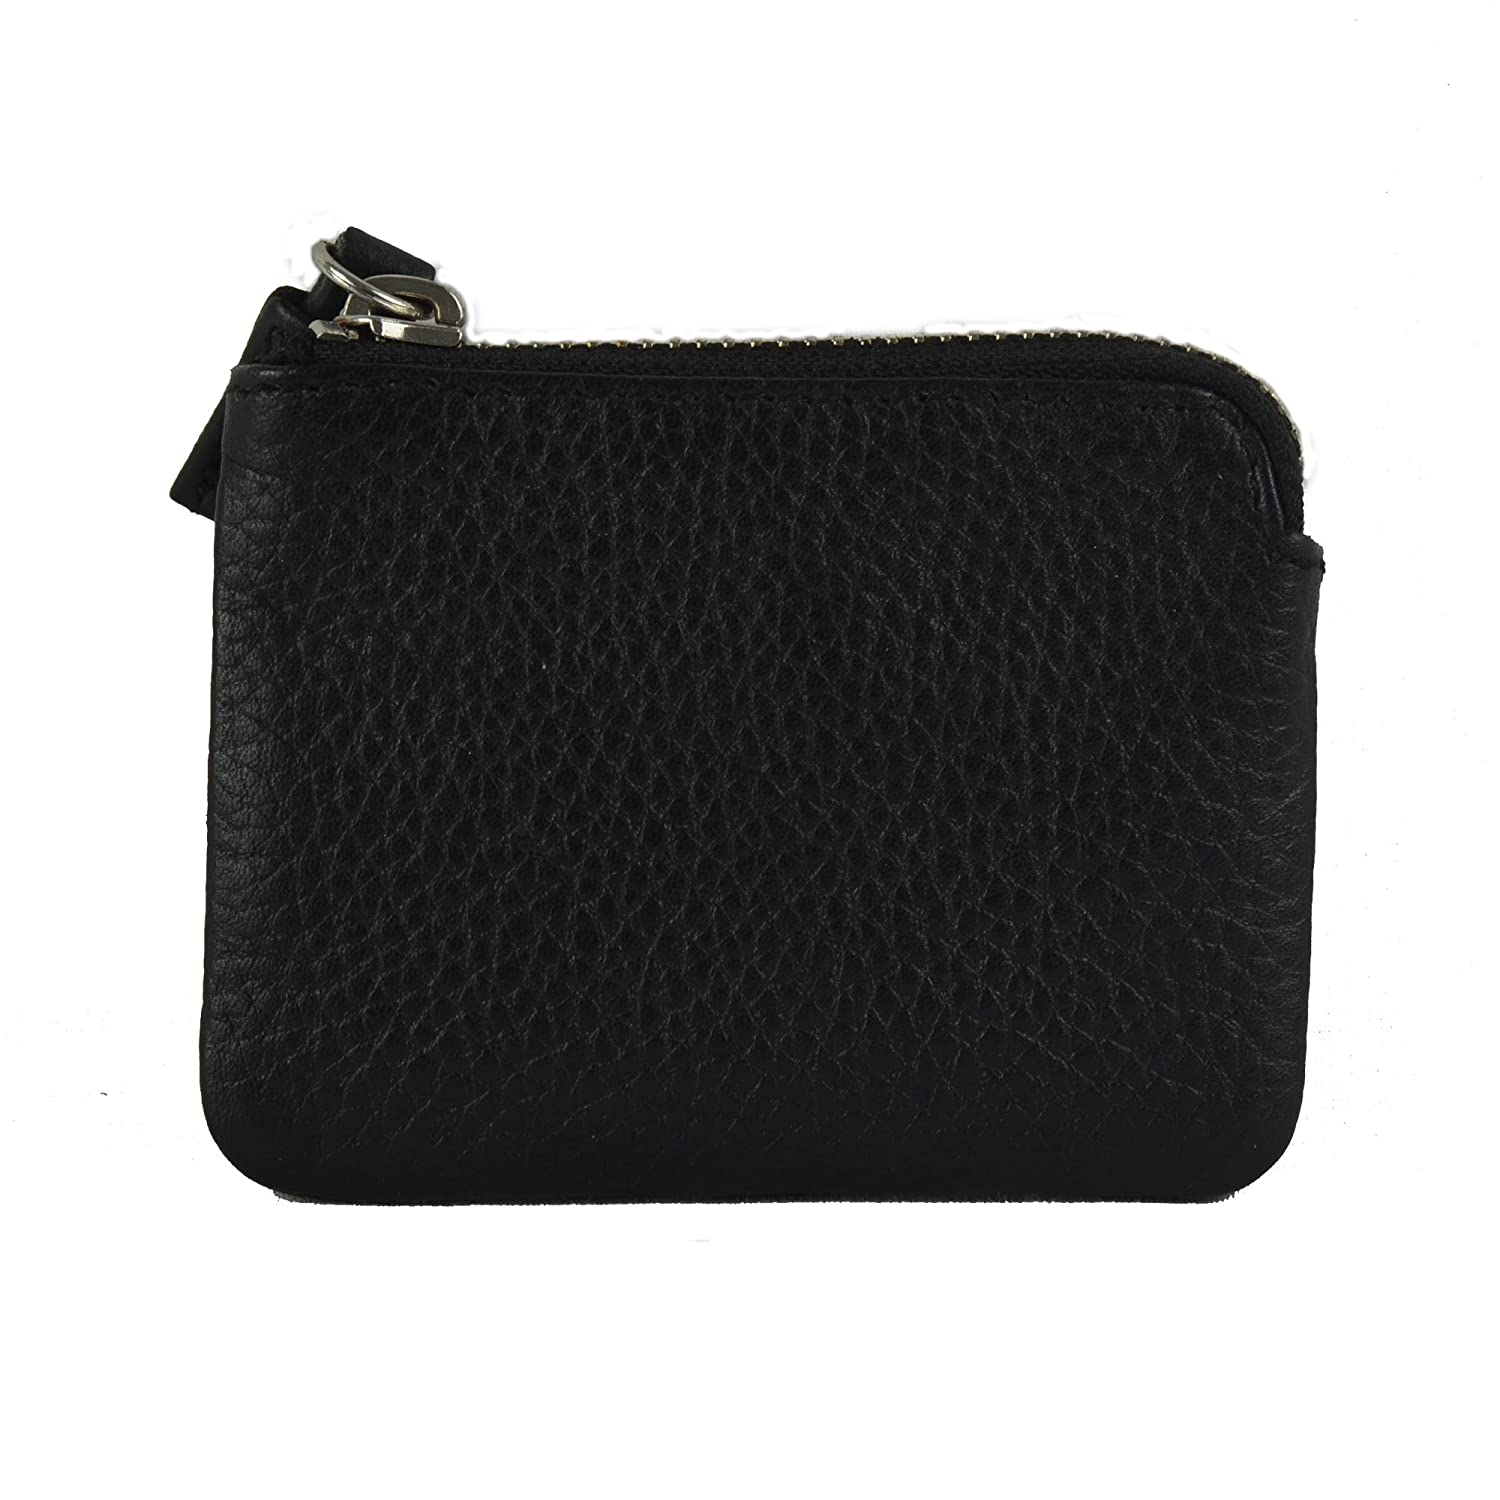 ID Holder with Zipper Closure Genuine Leather Credit Card Holder Black